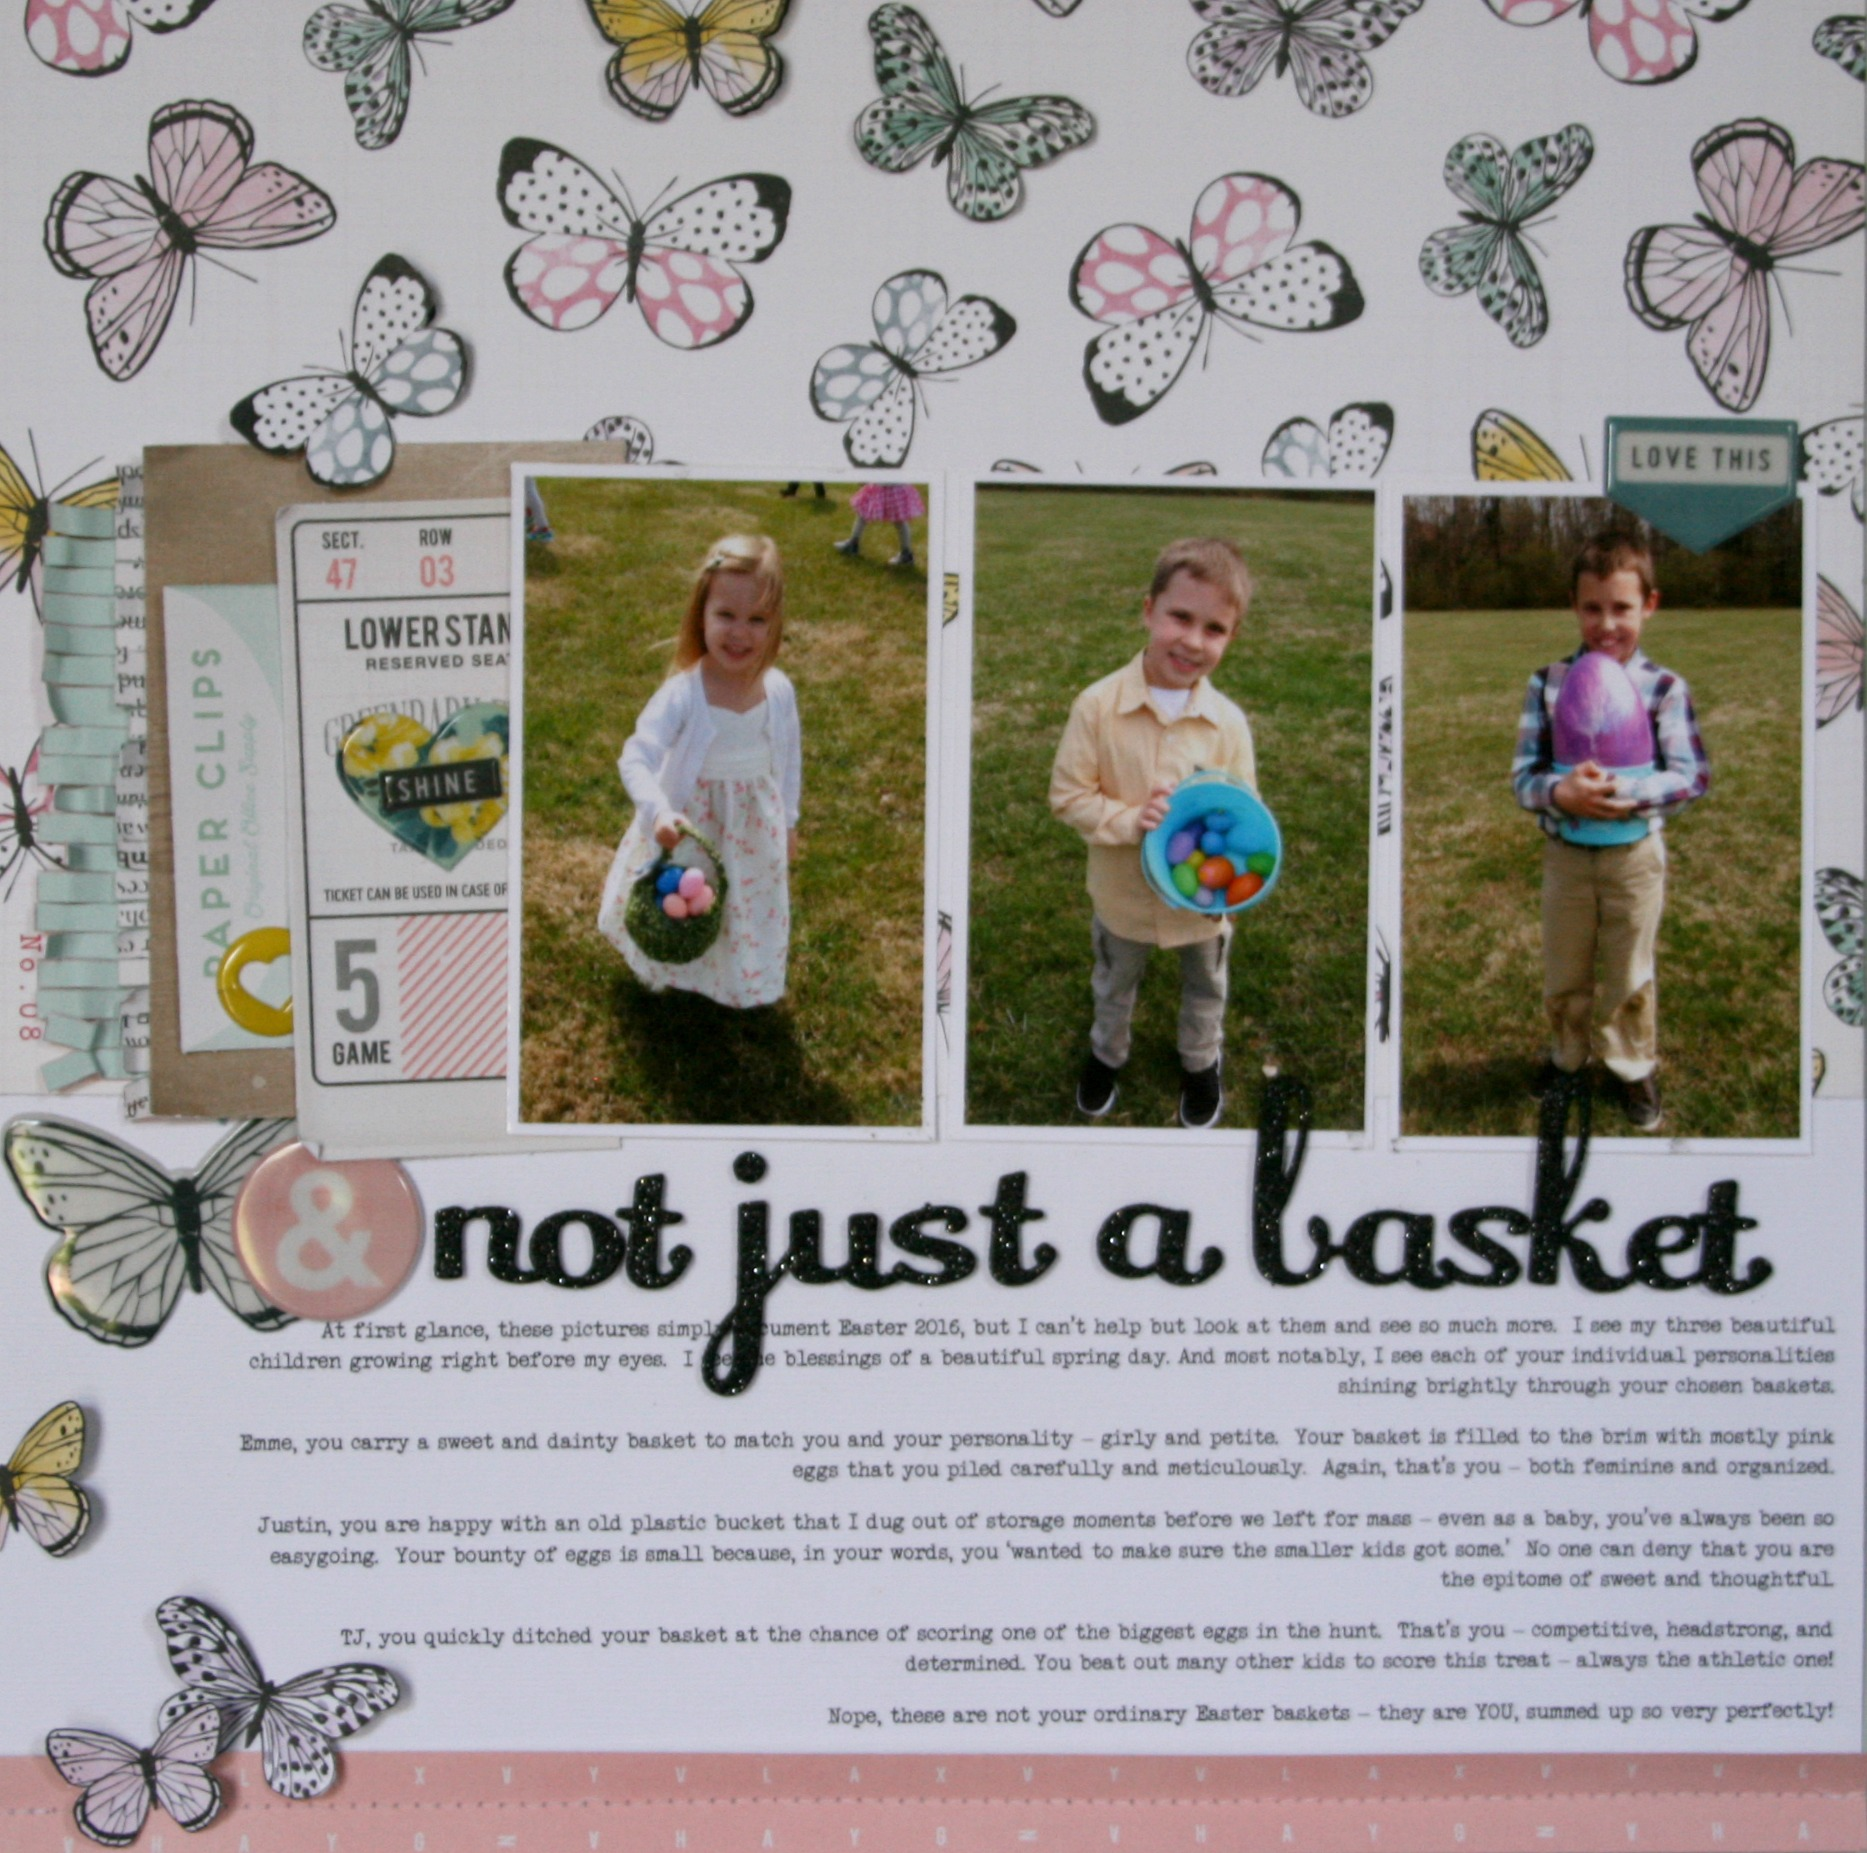 MCS_JaclynRench_MayMain_Layout3.jpg